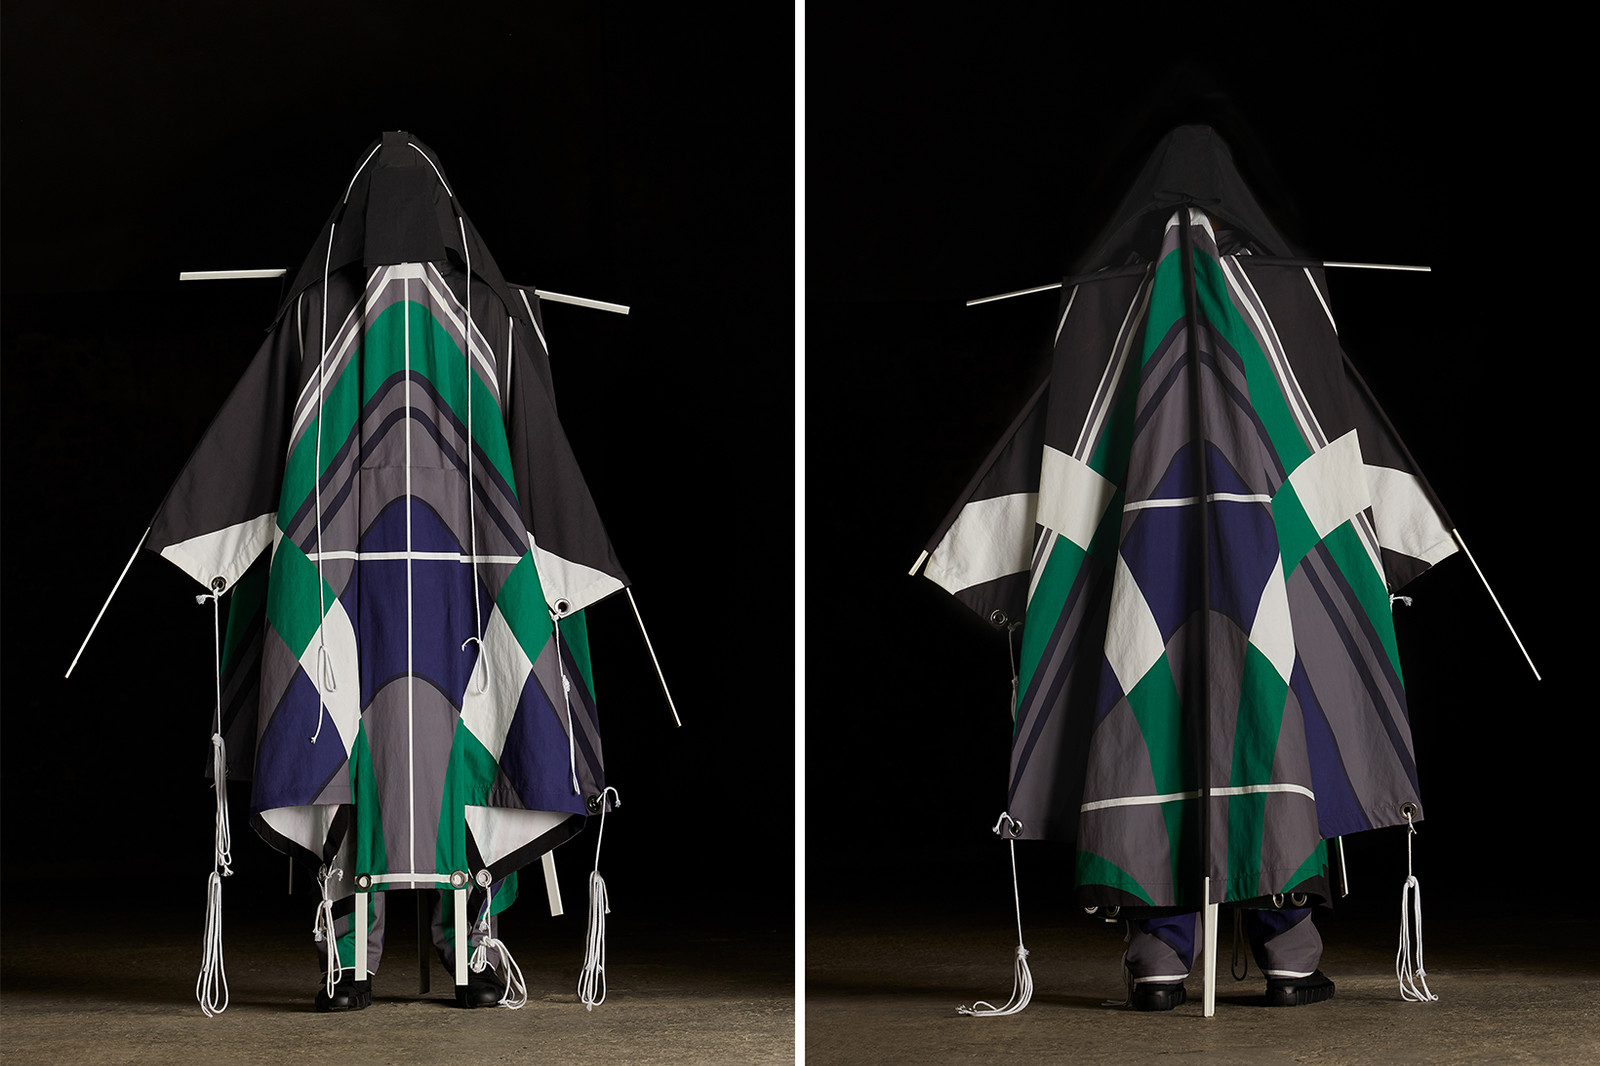 Craig Green Interview Moncler Genius Collection Project Simone Rocha SS19 Kite Tent